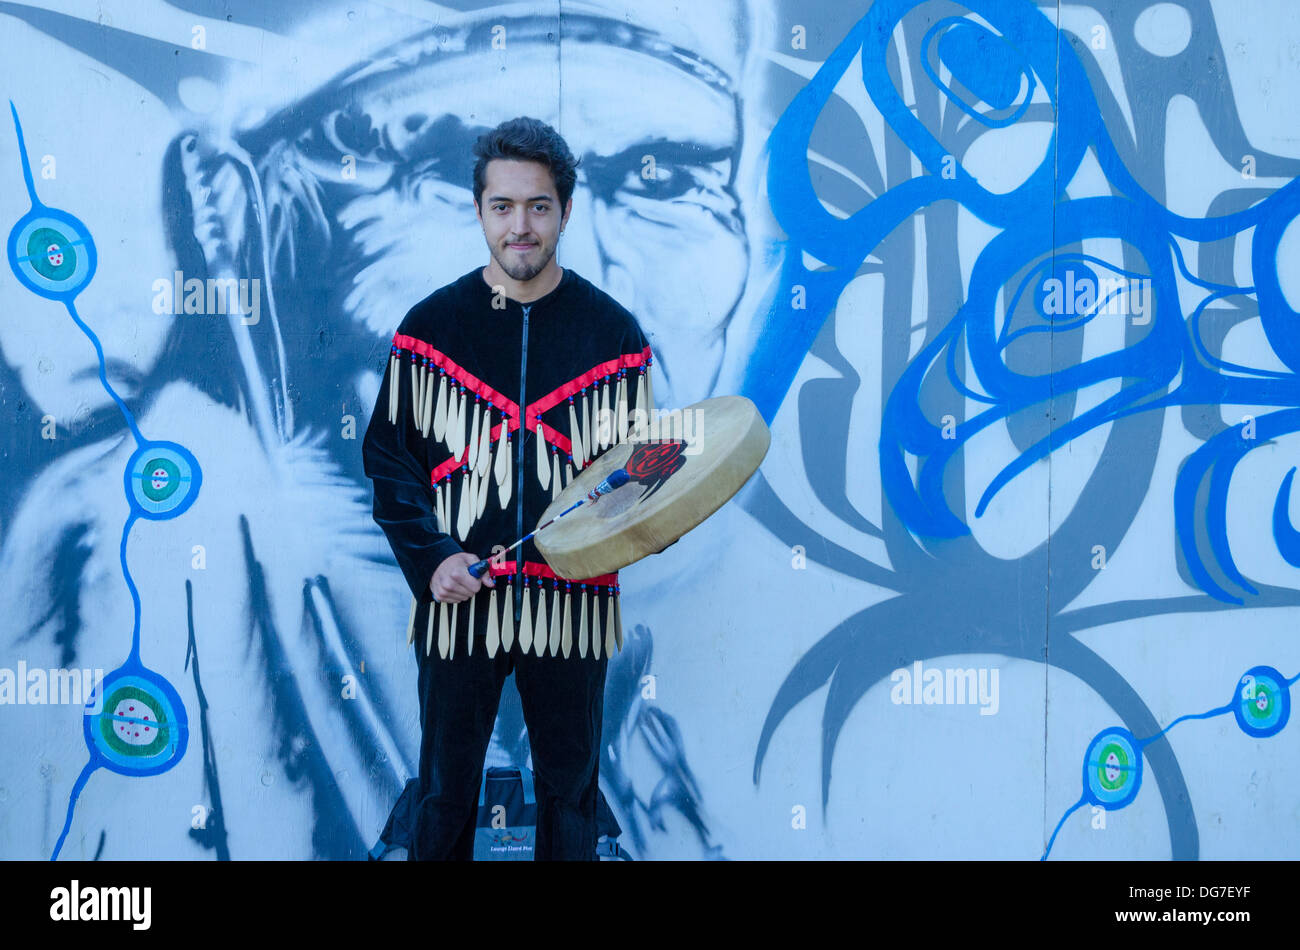 Drummer with The Children of Takaya Coast Salish group - Stock Image